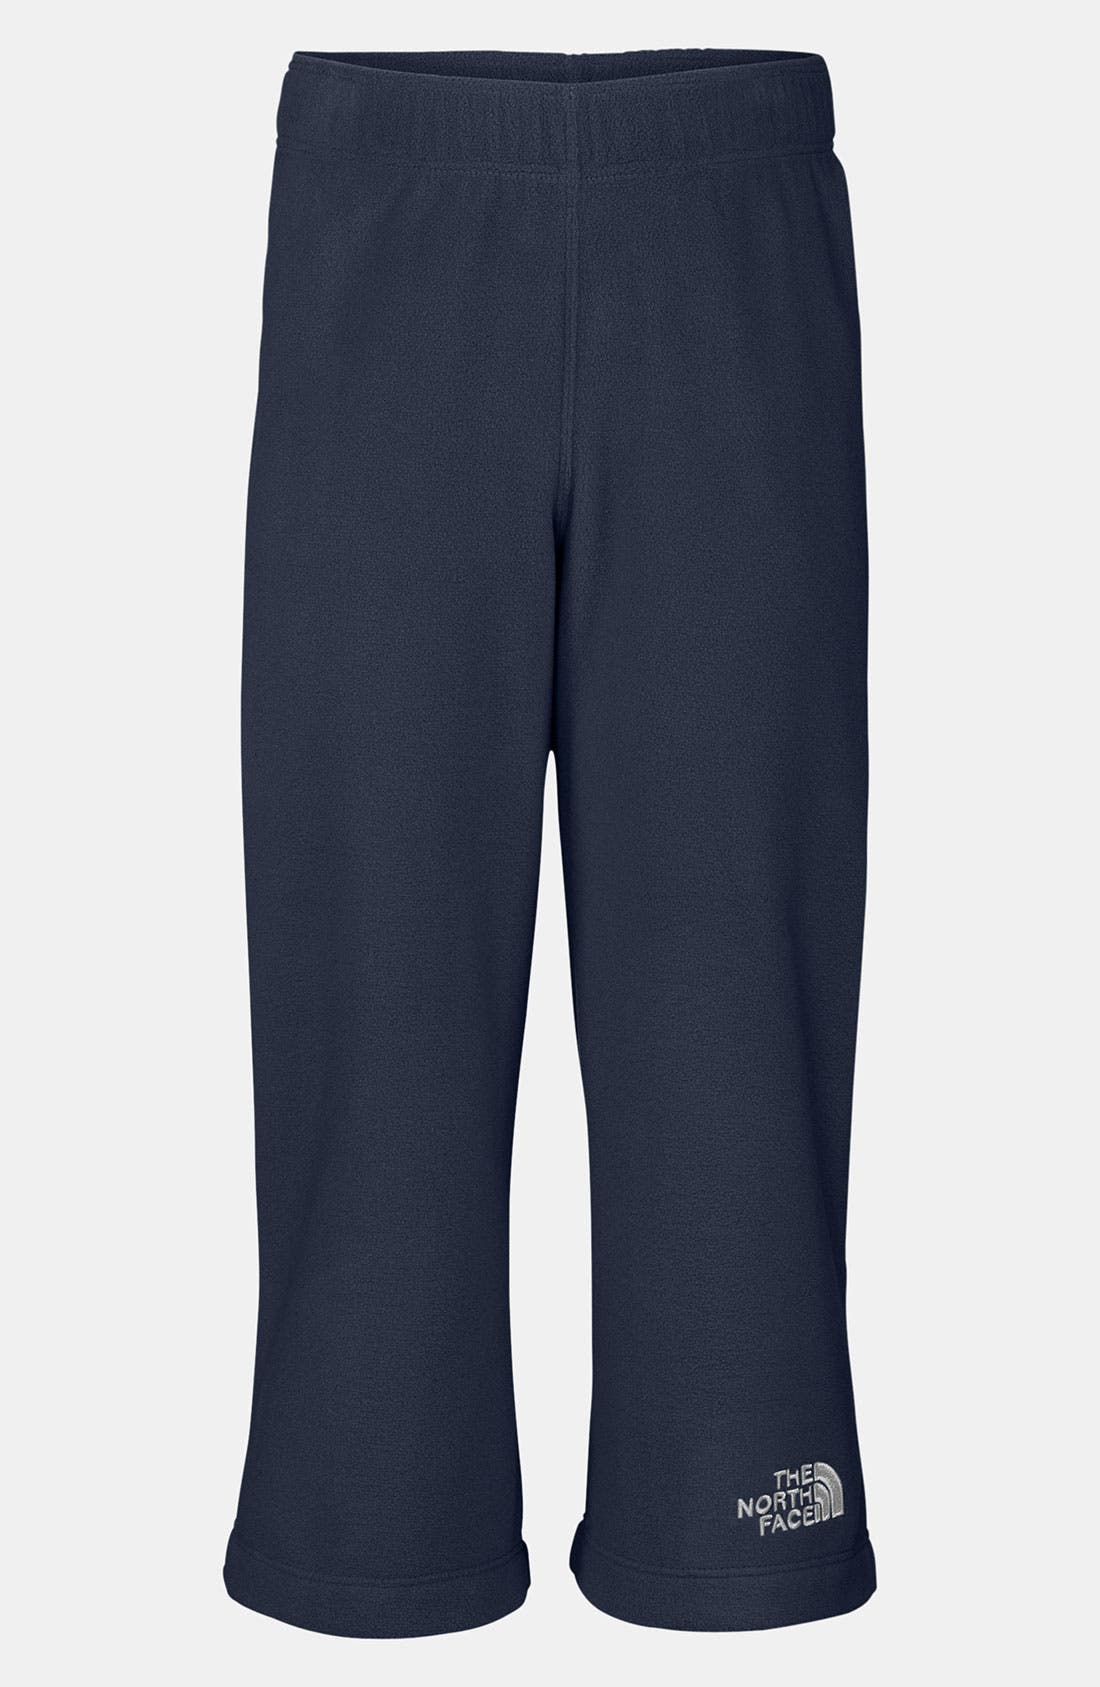 Main Image - The North Face 'Glacier' Pants (Toddler)